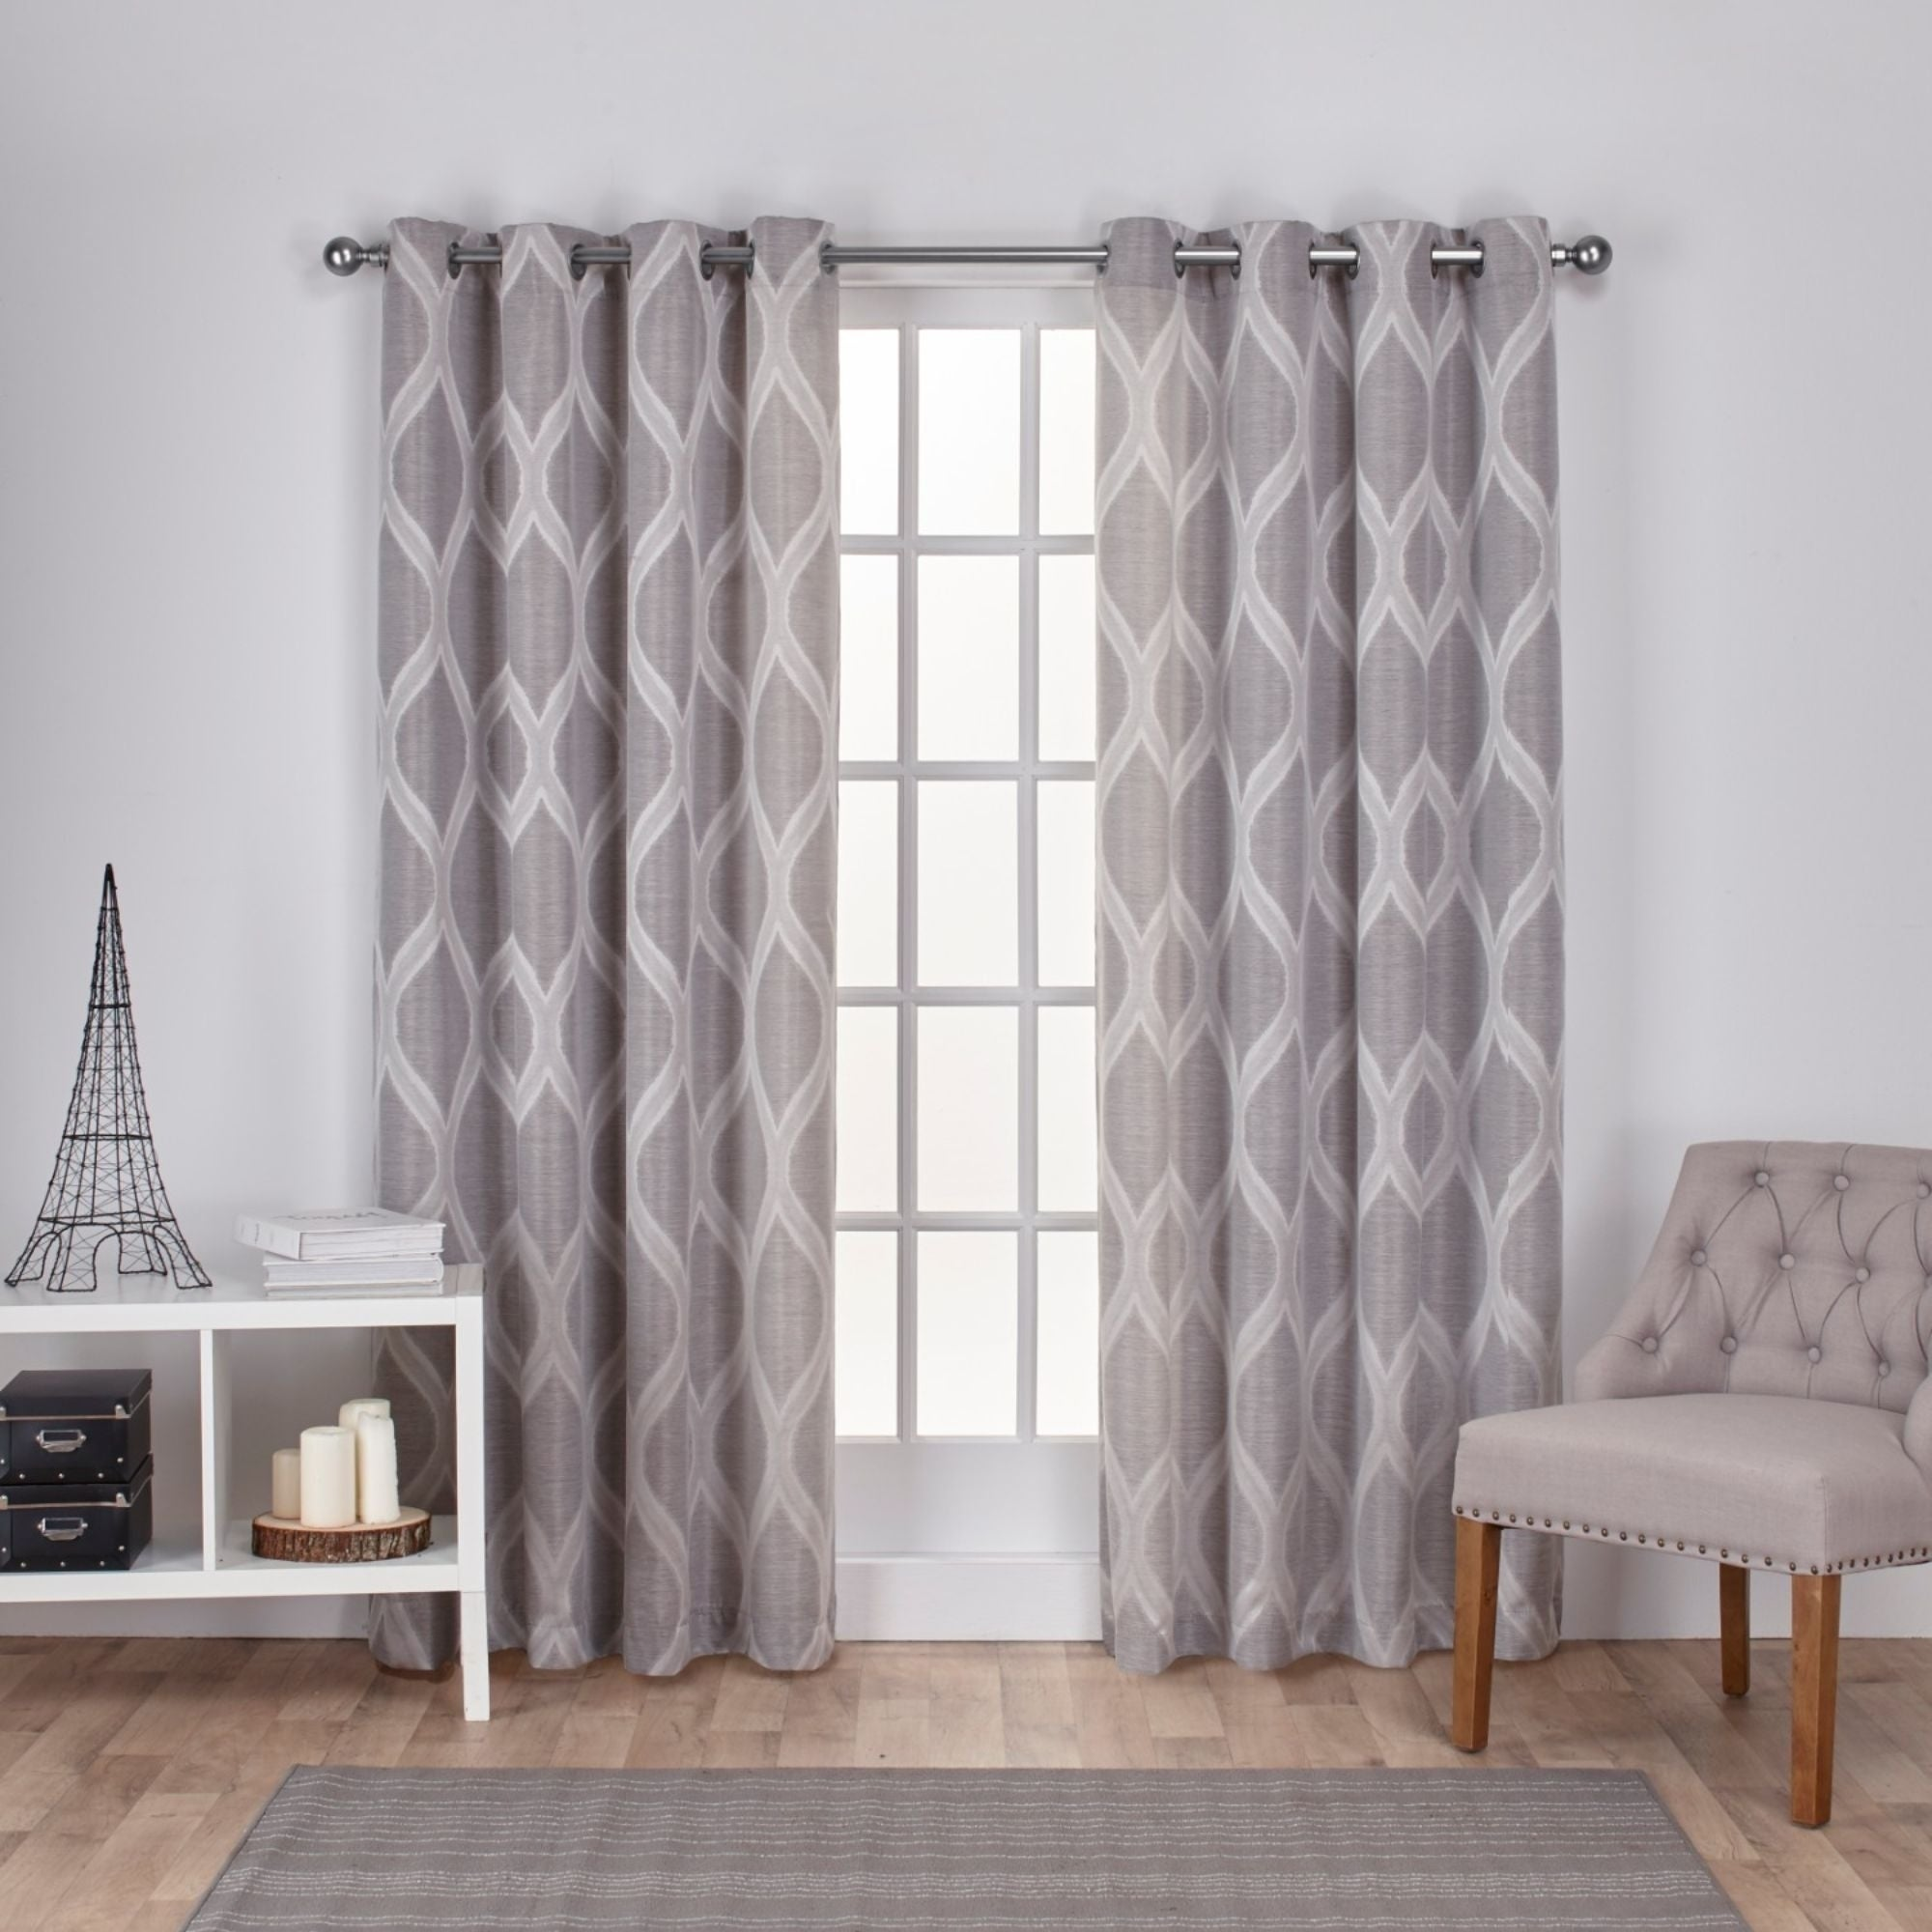 Buy 108 Inches Linen Curtains Drapes Online At Overstock